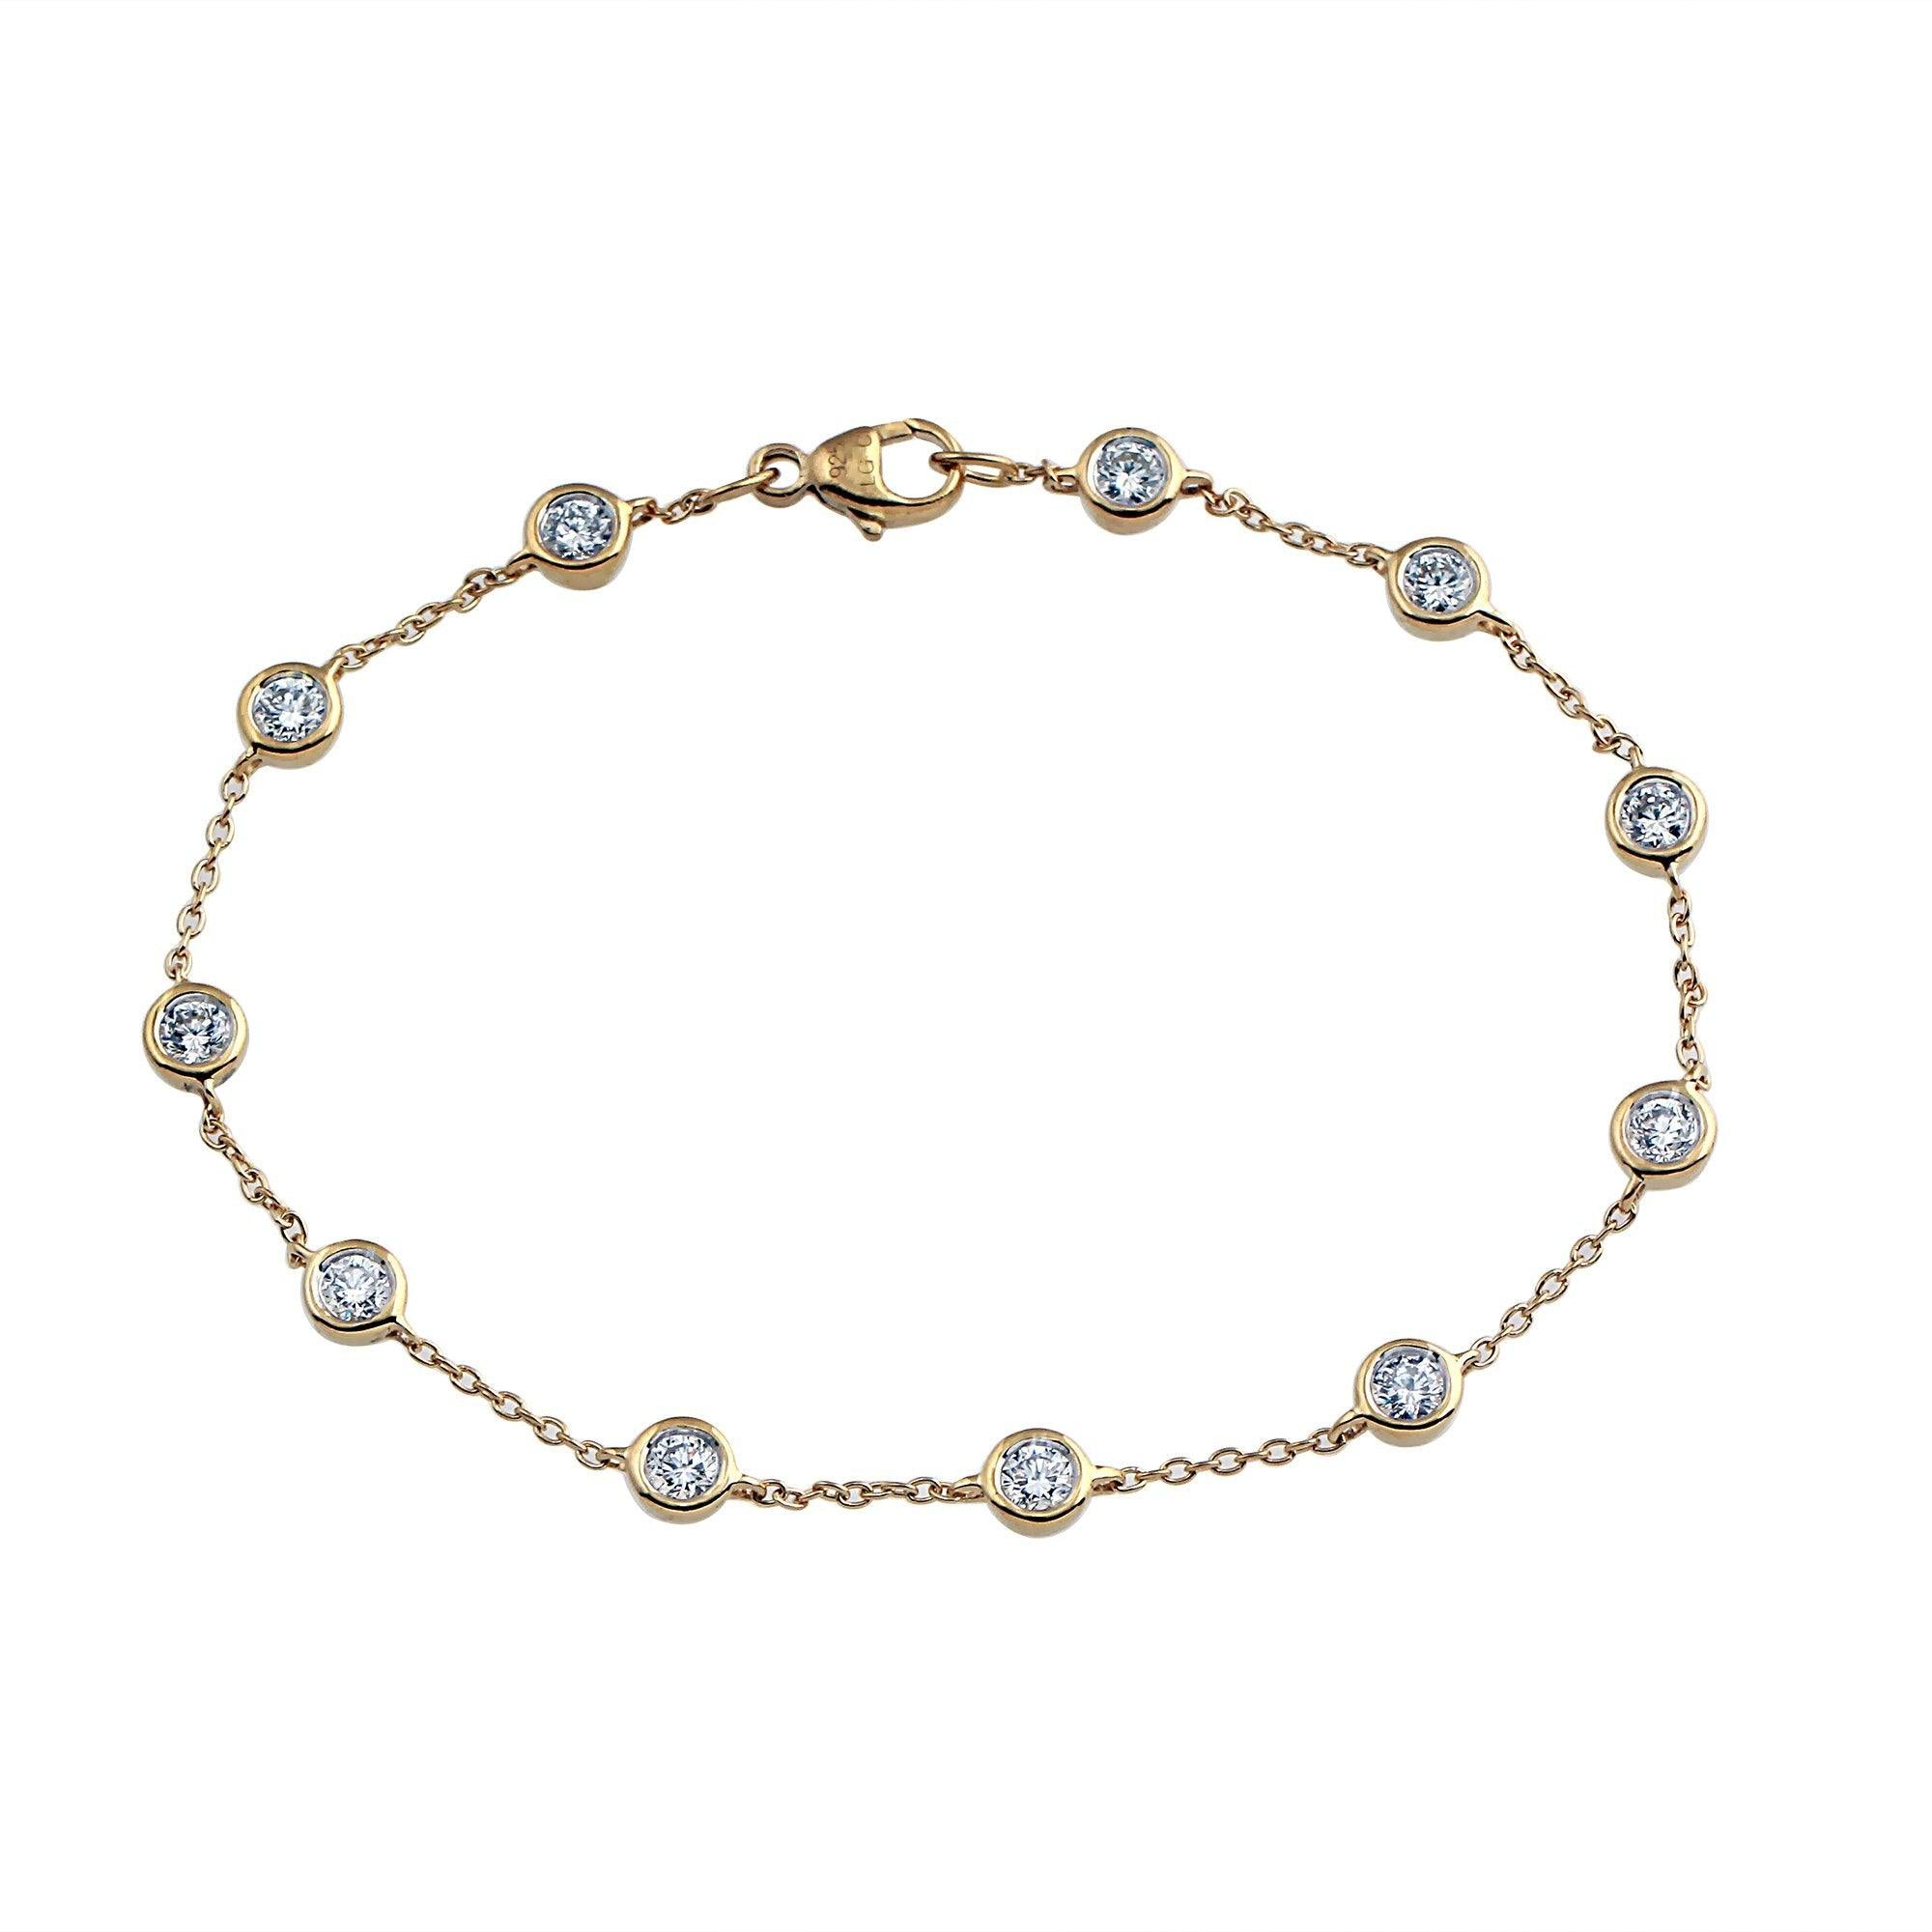 Nuri & Ash Phoenix Diamond Station Bracelet - 14k Gold Over Sterling Silver